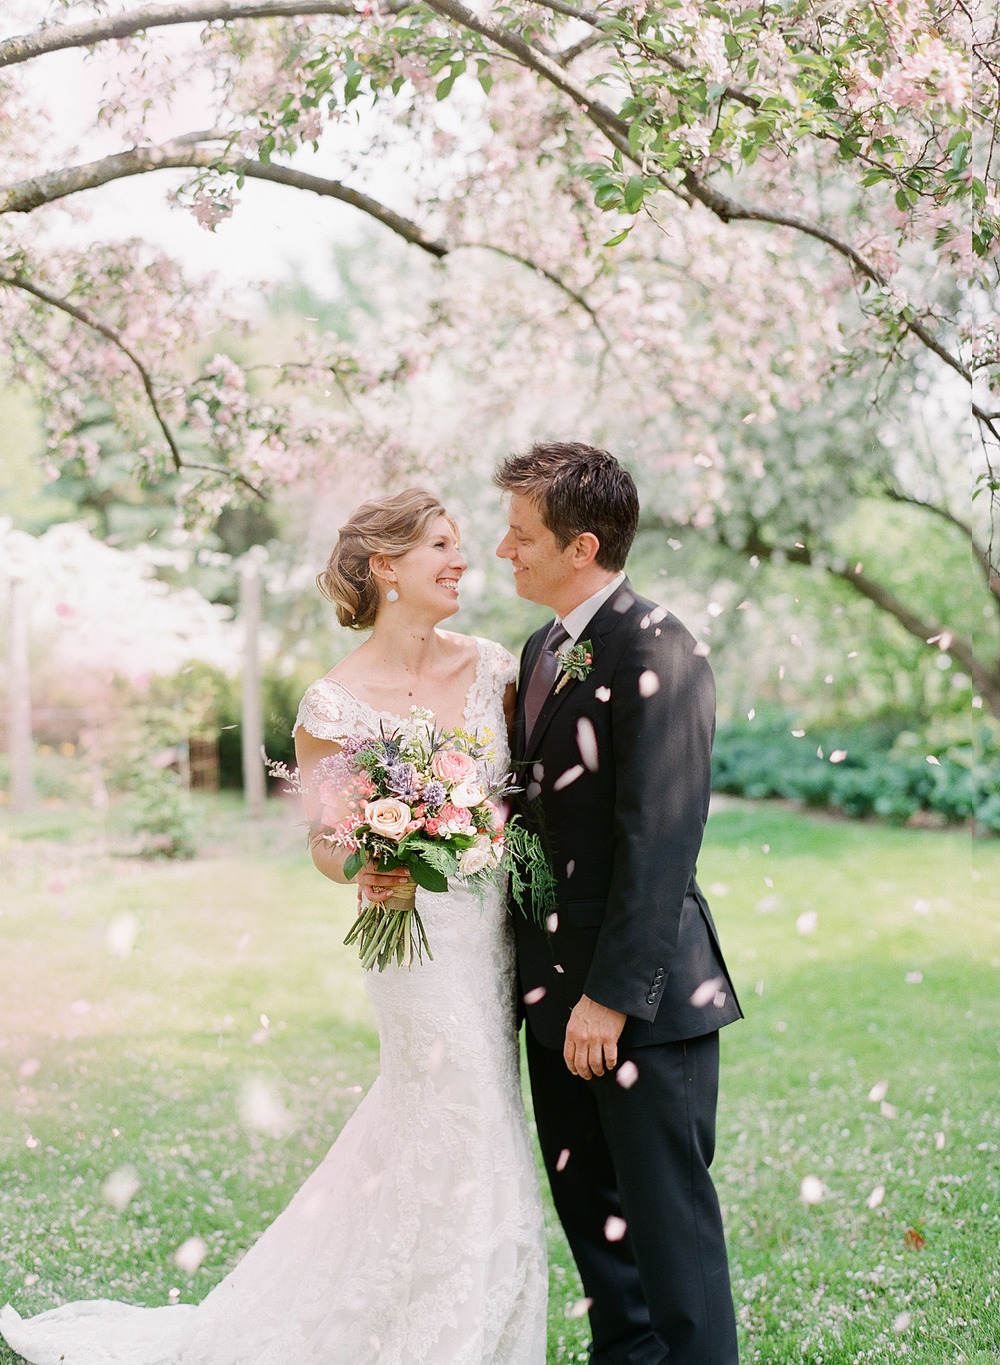 bride and groom have their first look under falling petals at their wedding at Northwind Perennial Gardens in wisconsin while destination photographer Lexia Frank photographs on film